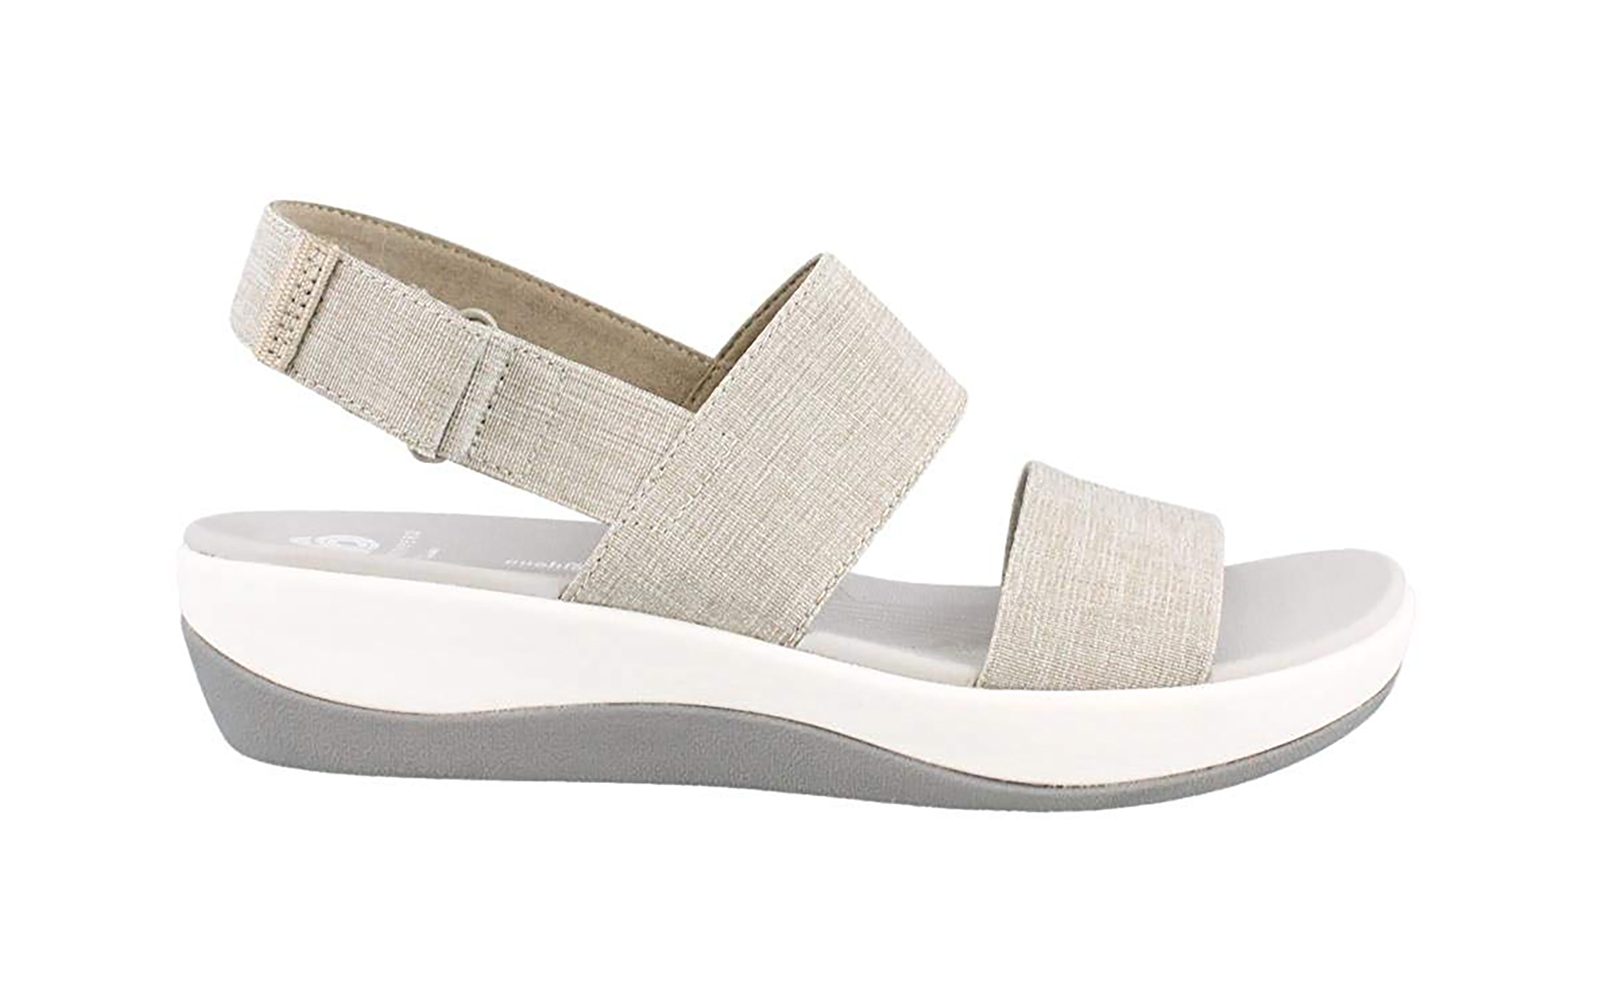 56eb291fe 14 Most Comfortable Sandals for 2019, According to Reviews | Travel ...